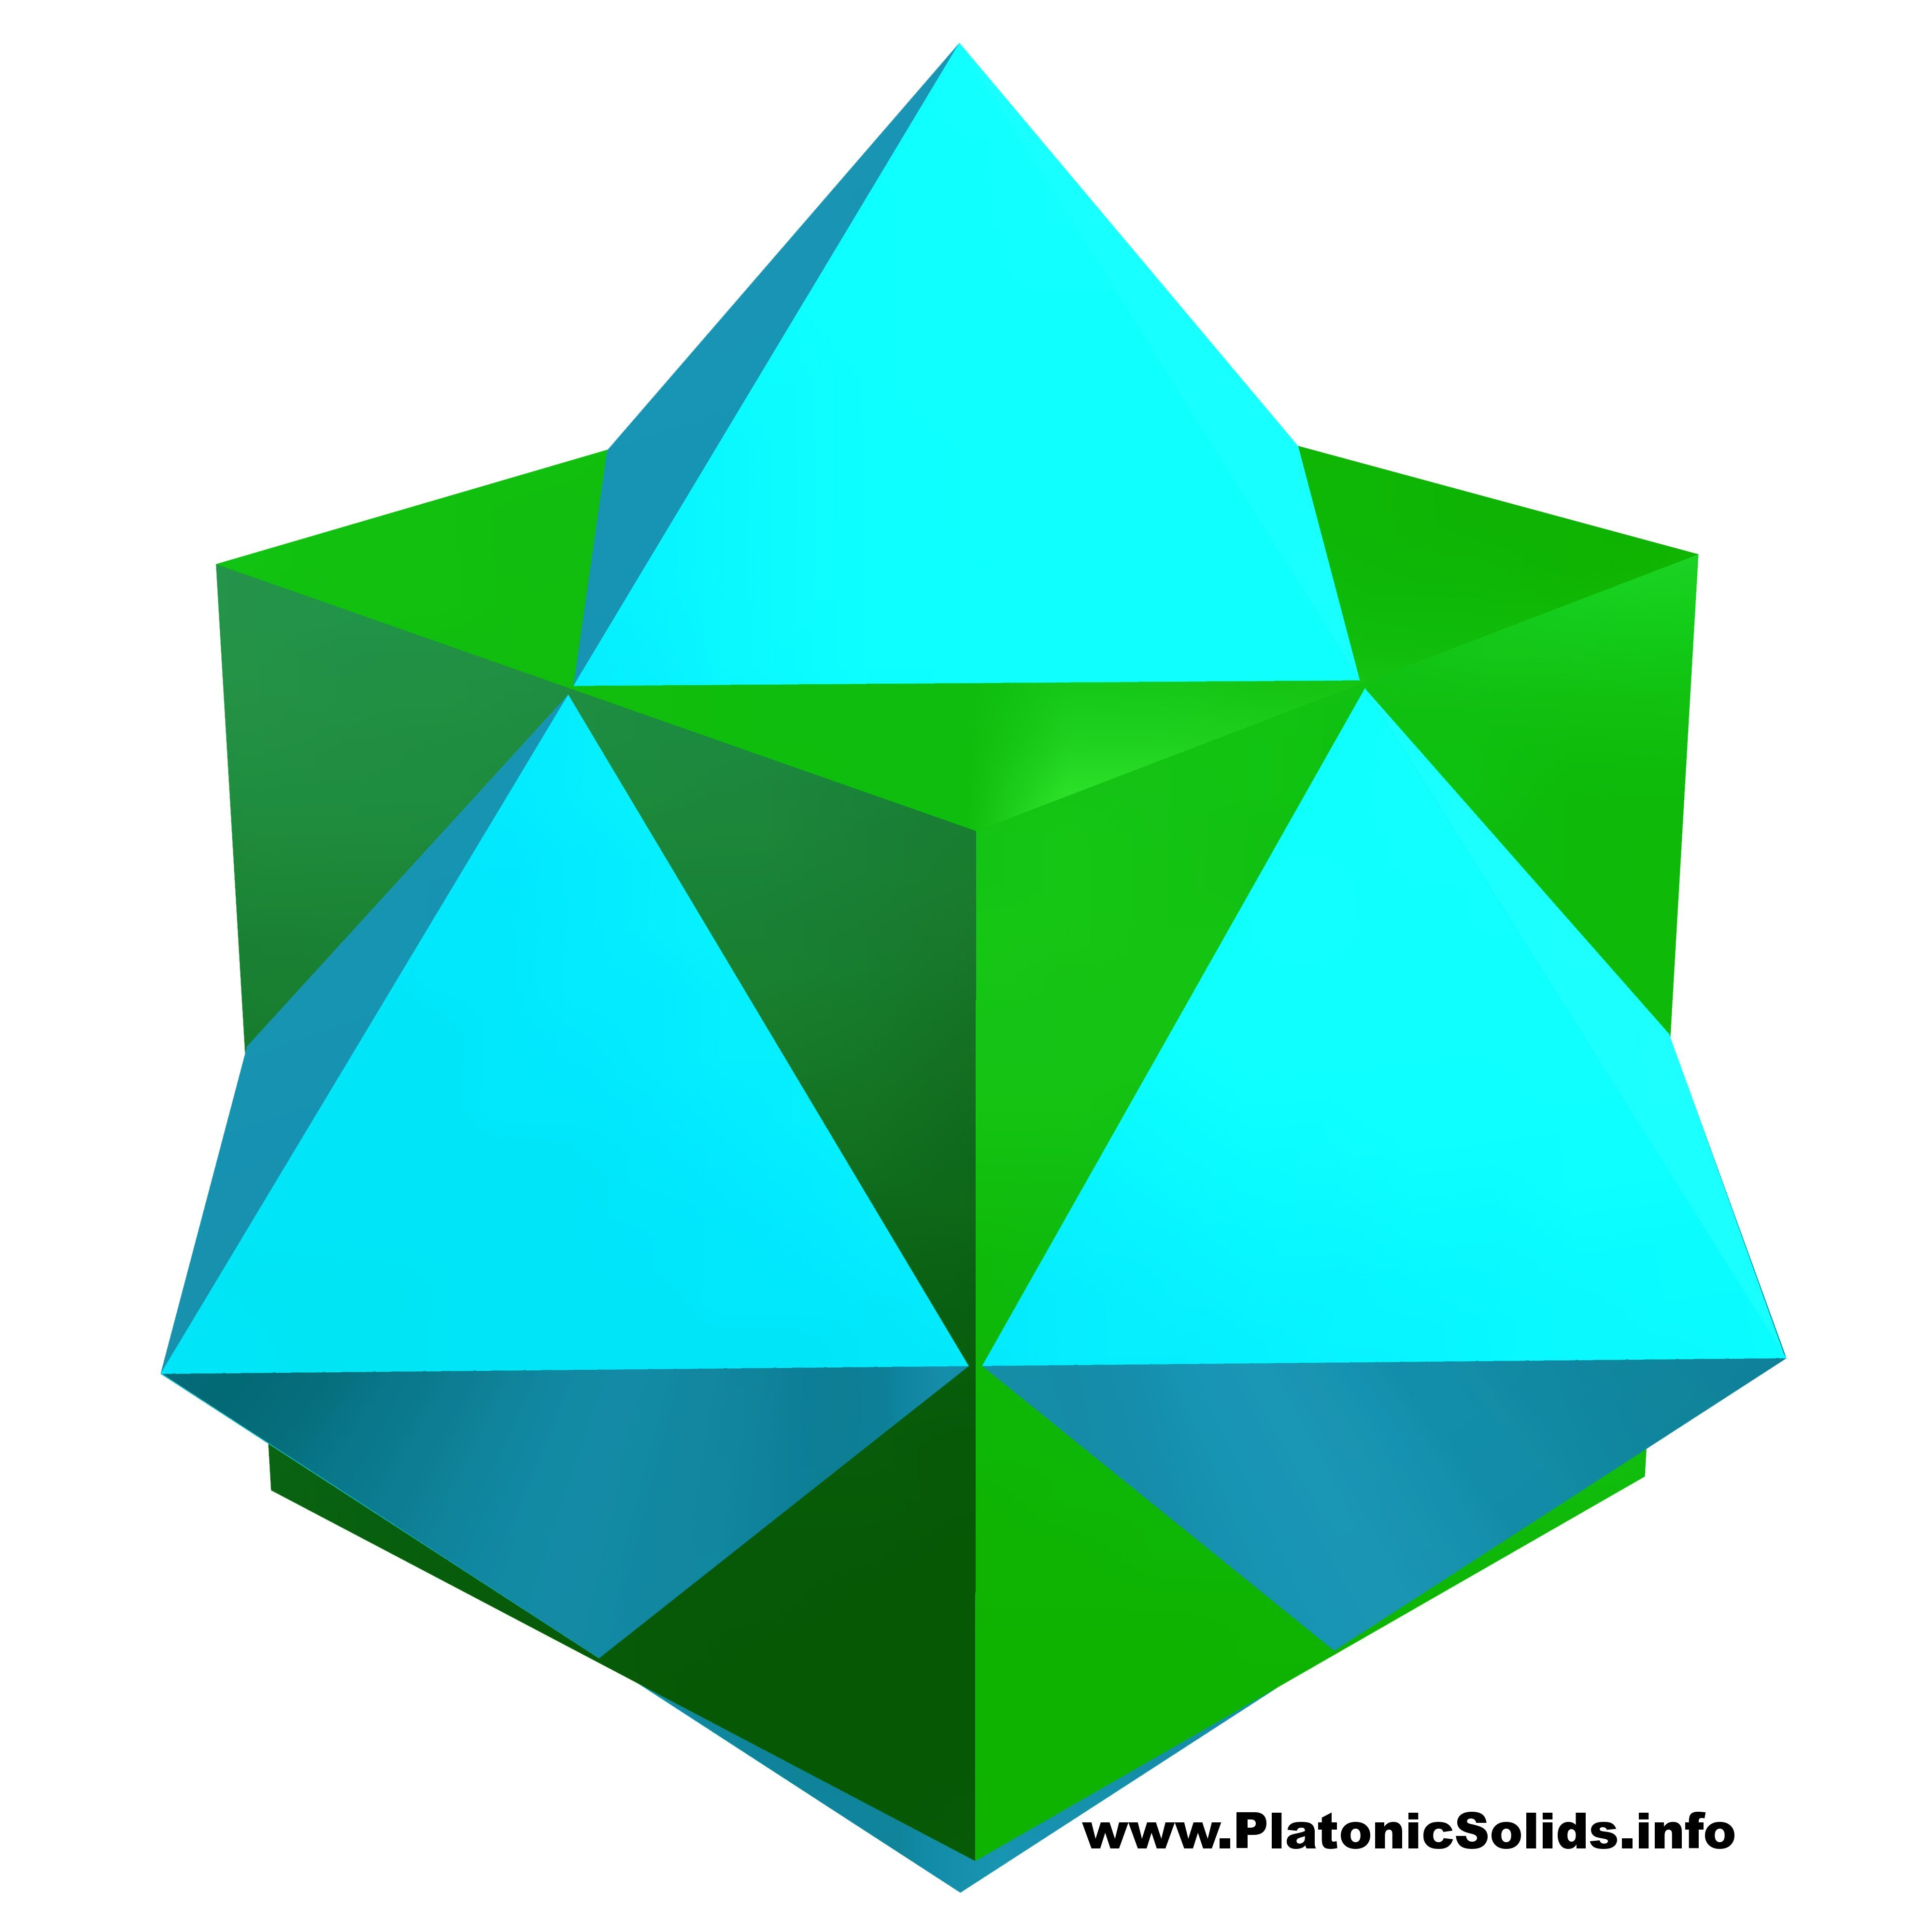 Hi Res Images On The Platonic Solids Information Site Home Of The